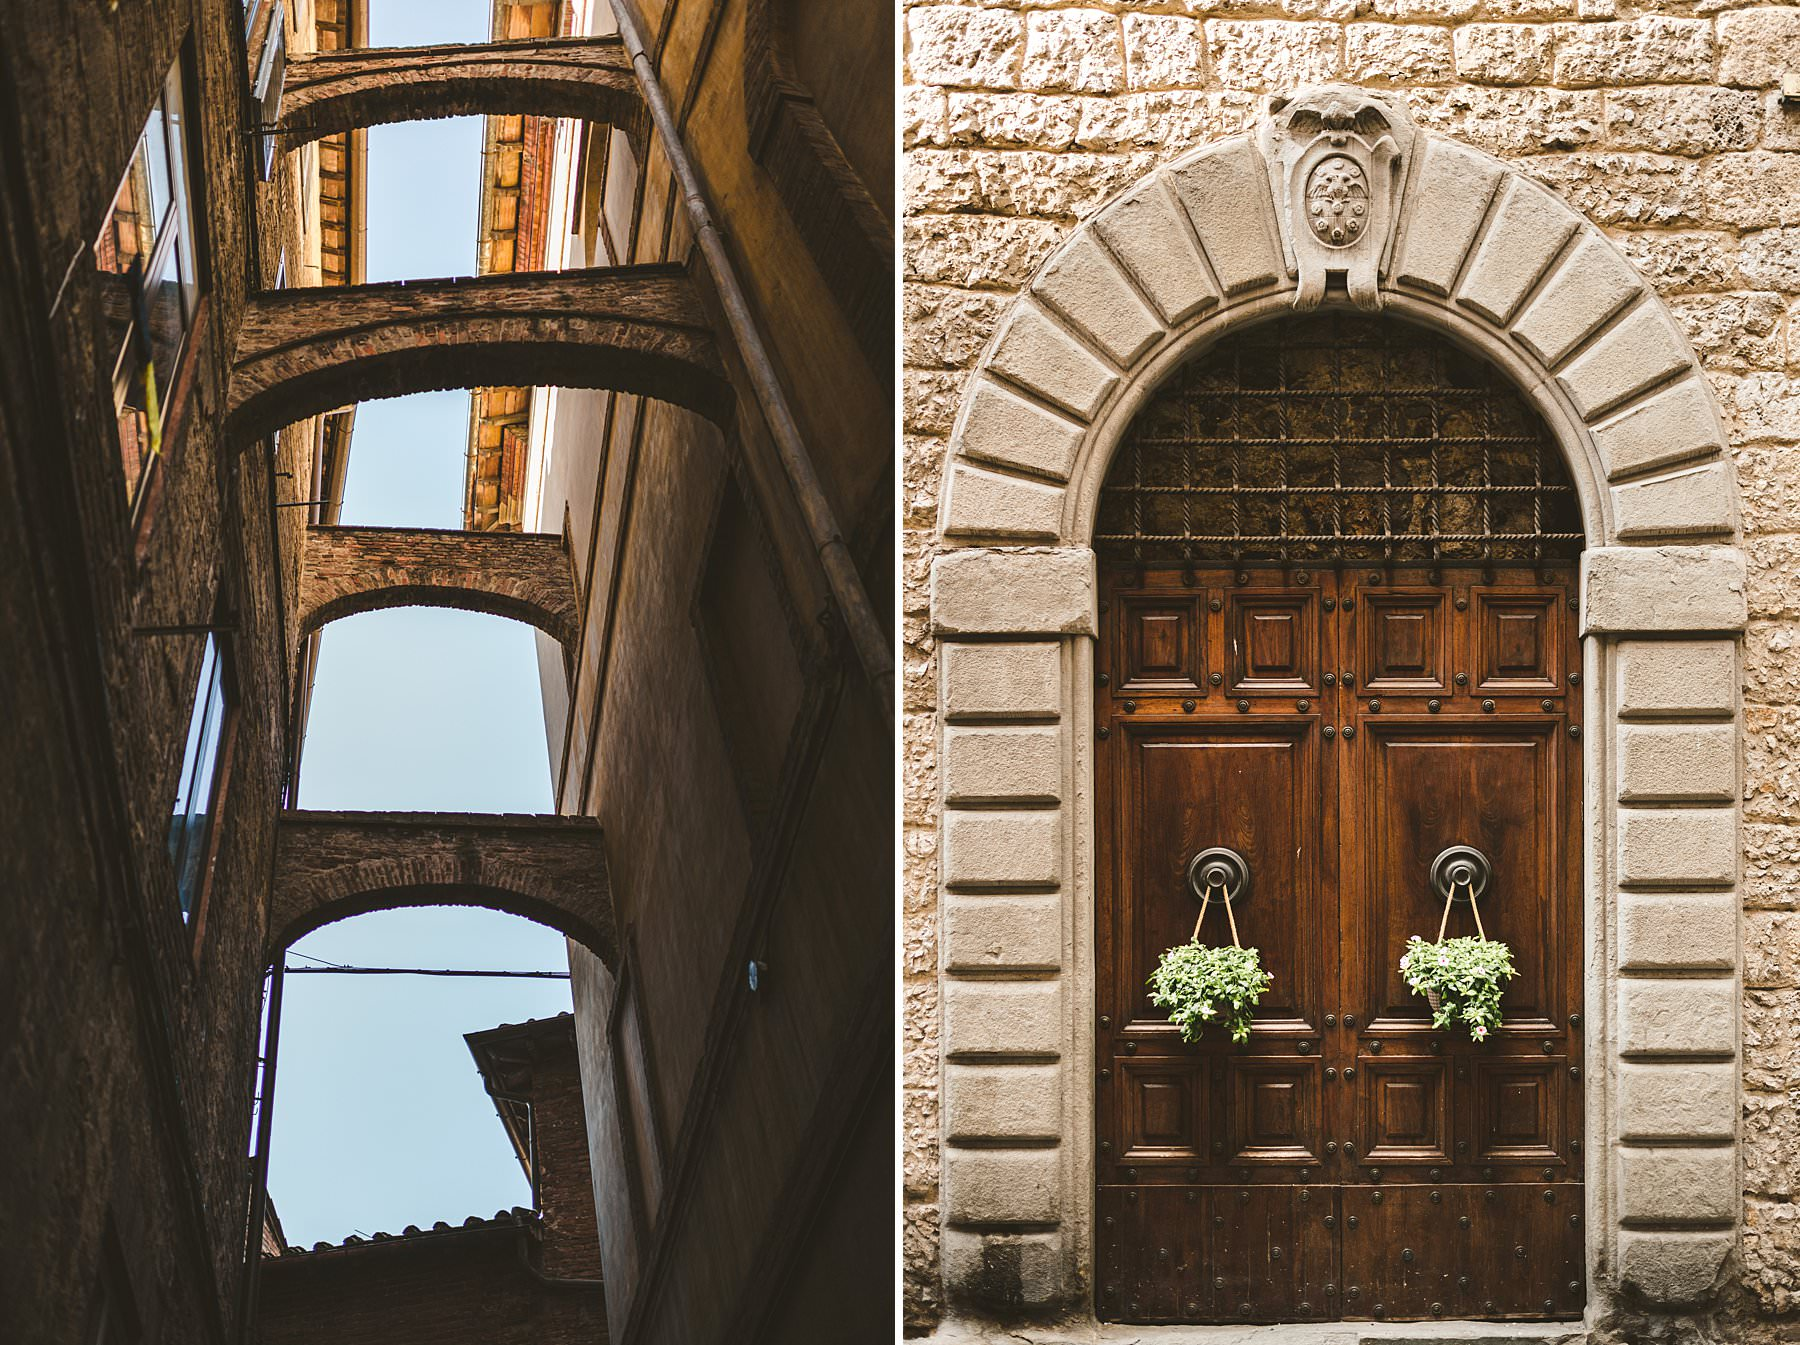 Siena town in Tuscany is a perfect location to get married with historical streets and ideal places to get photos